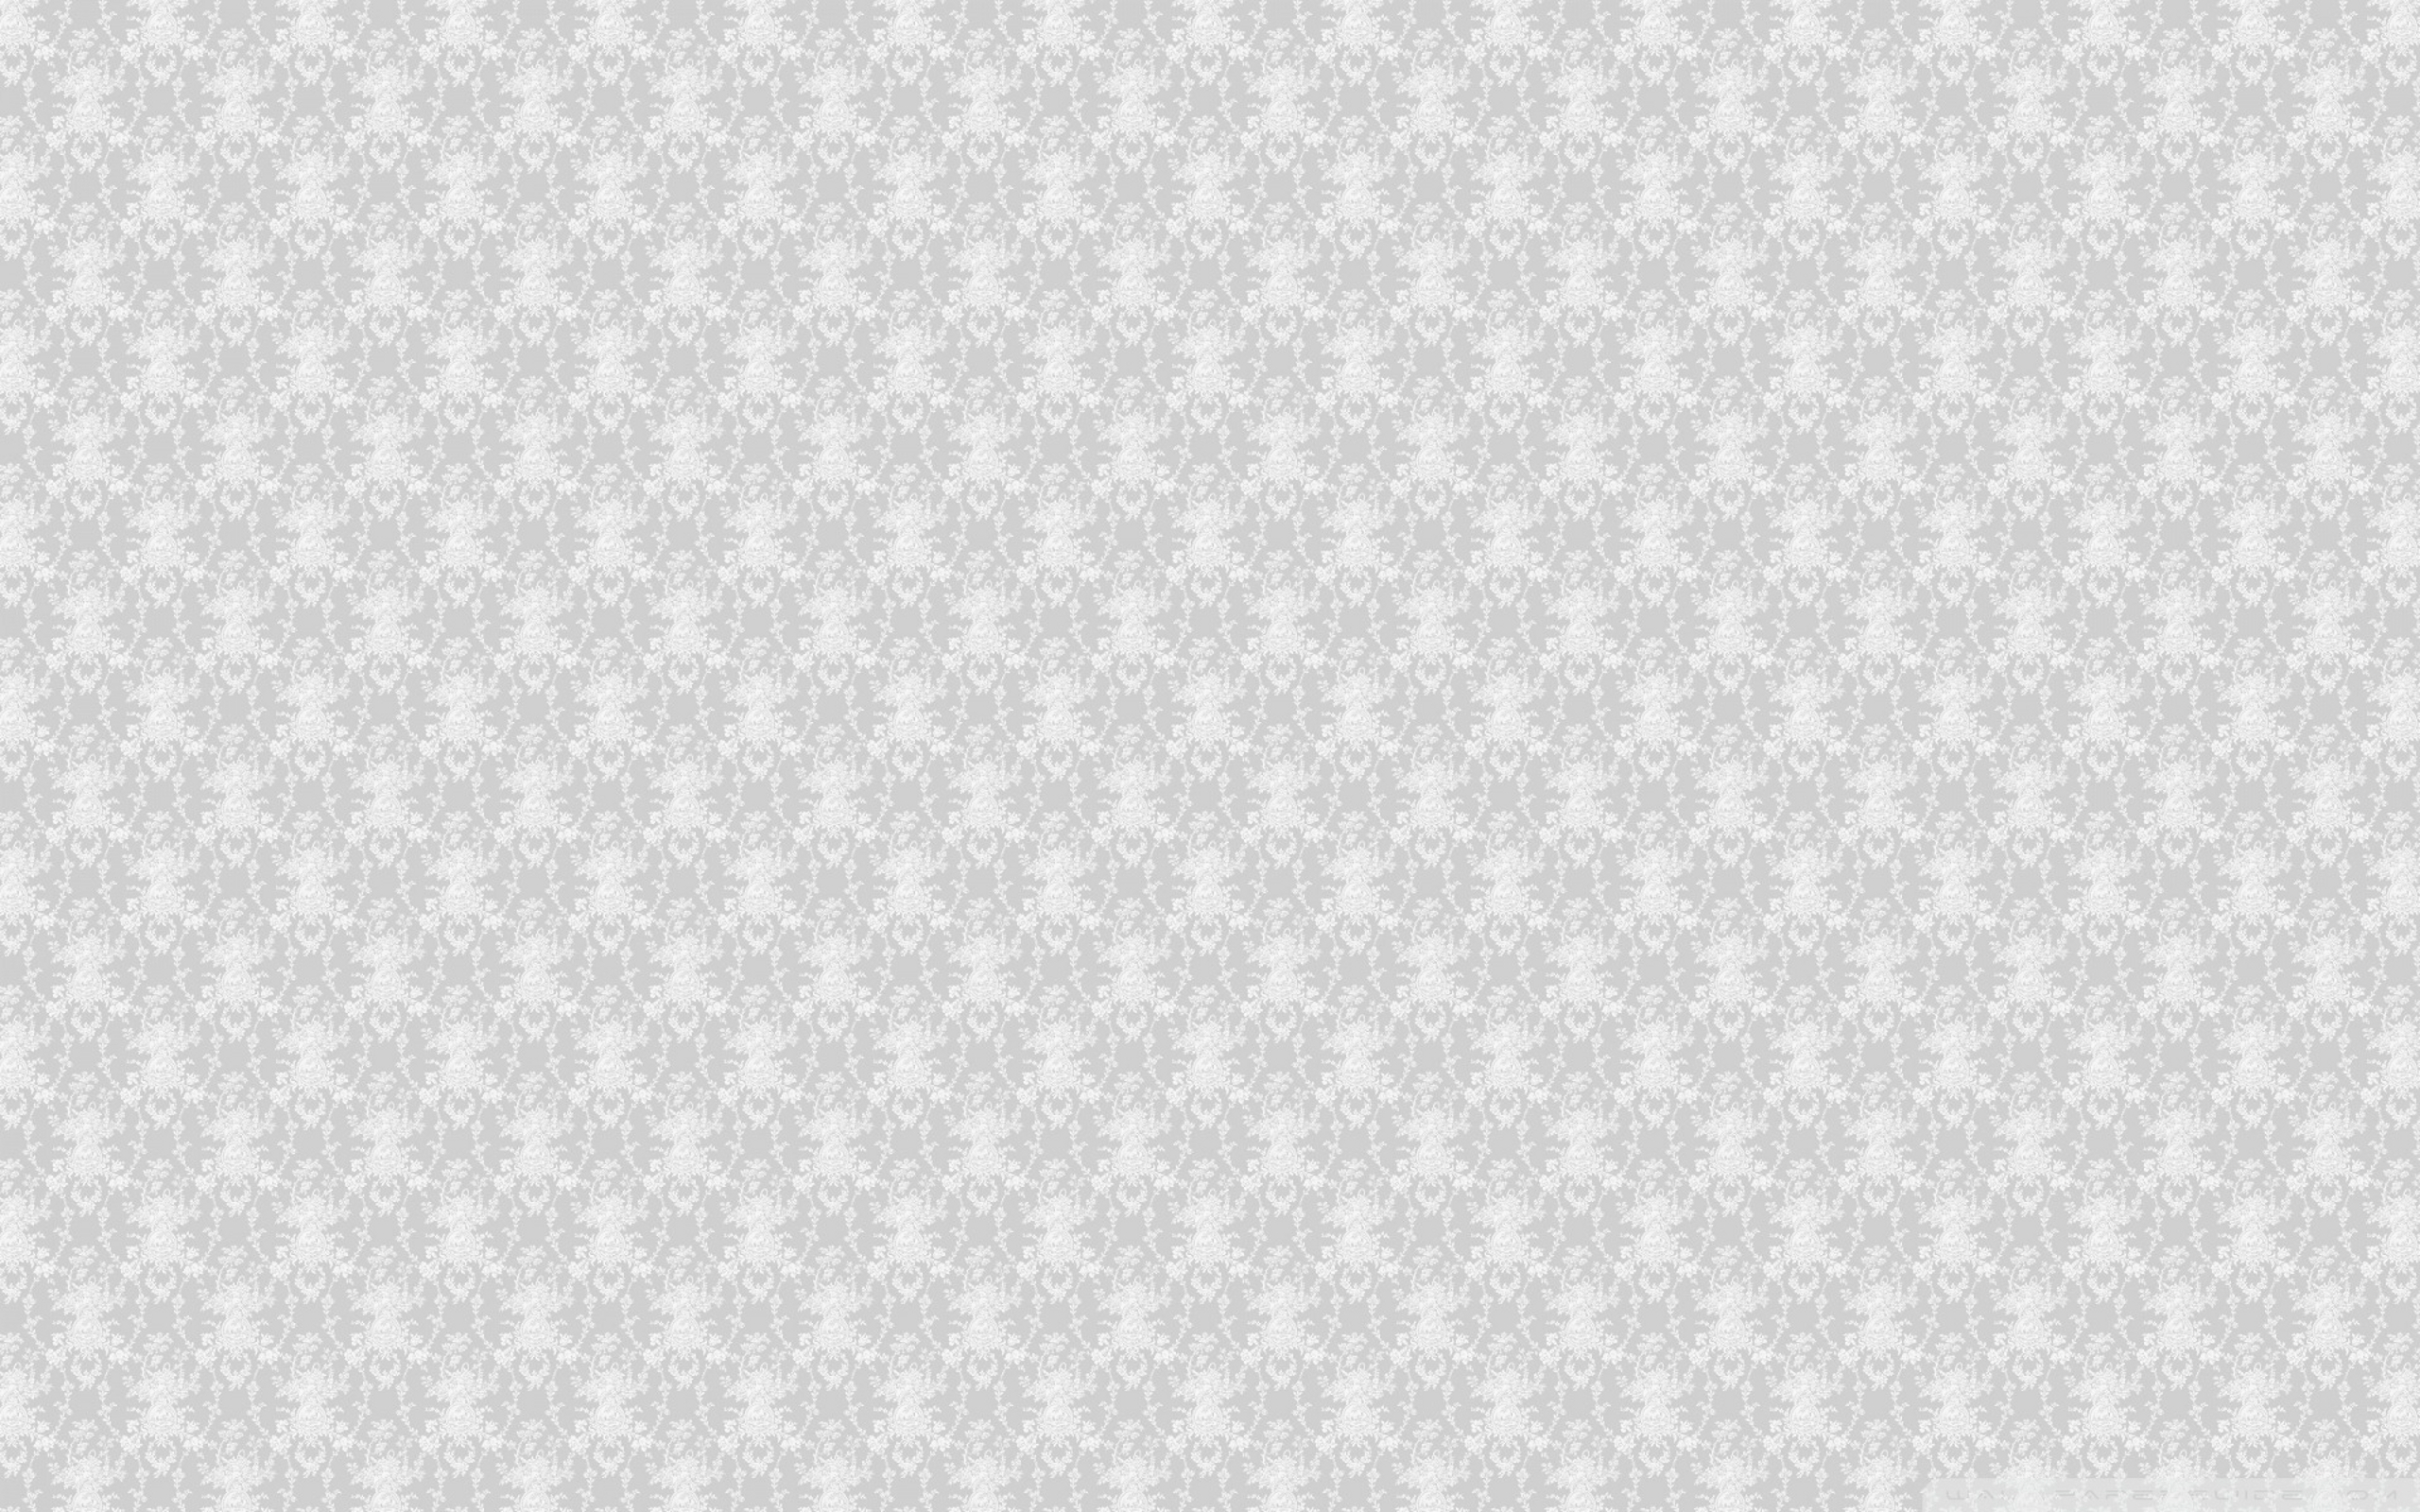 56 Pattern Hd Wallpapers Background Images